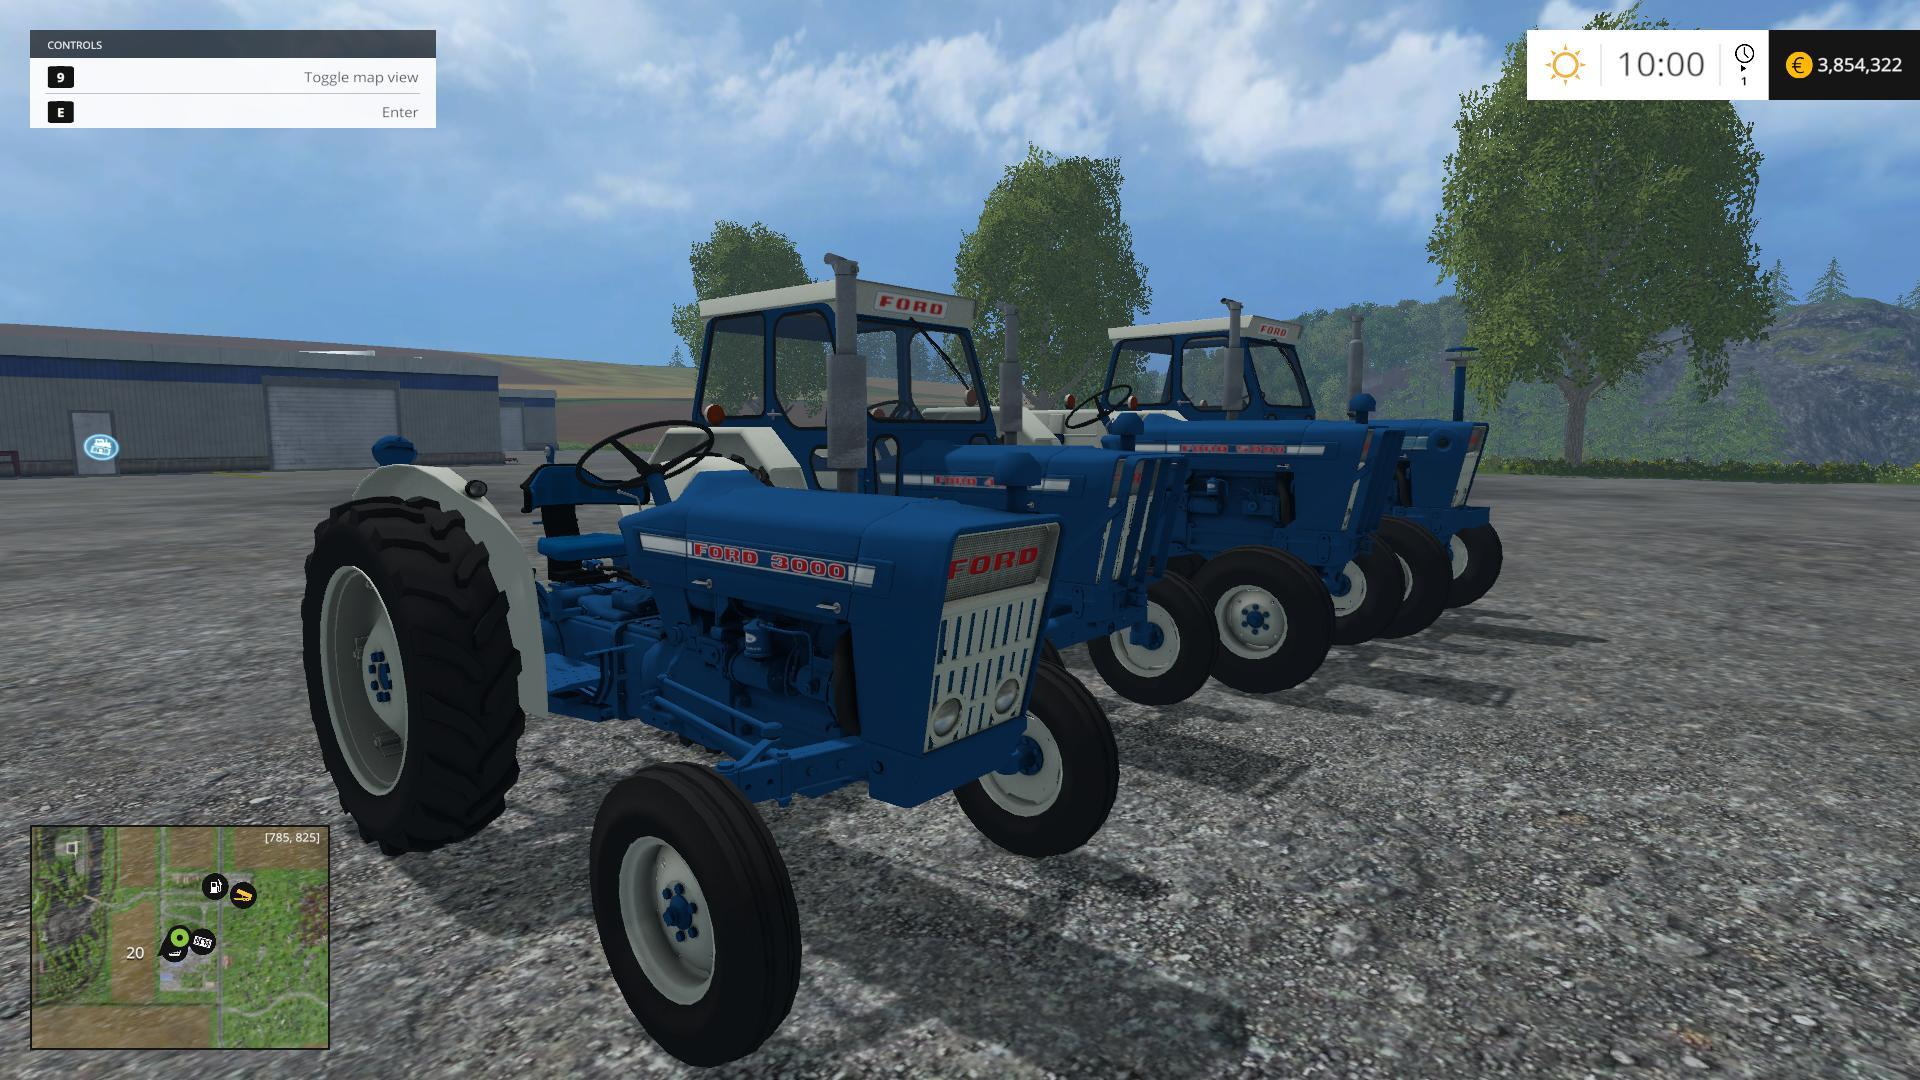 FORD FORCES V1 0 TRACTOR - Farming simulator 2019 / 2017